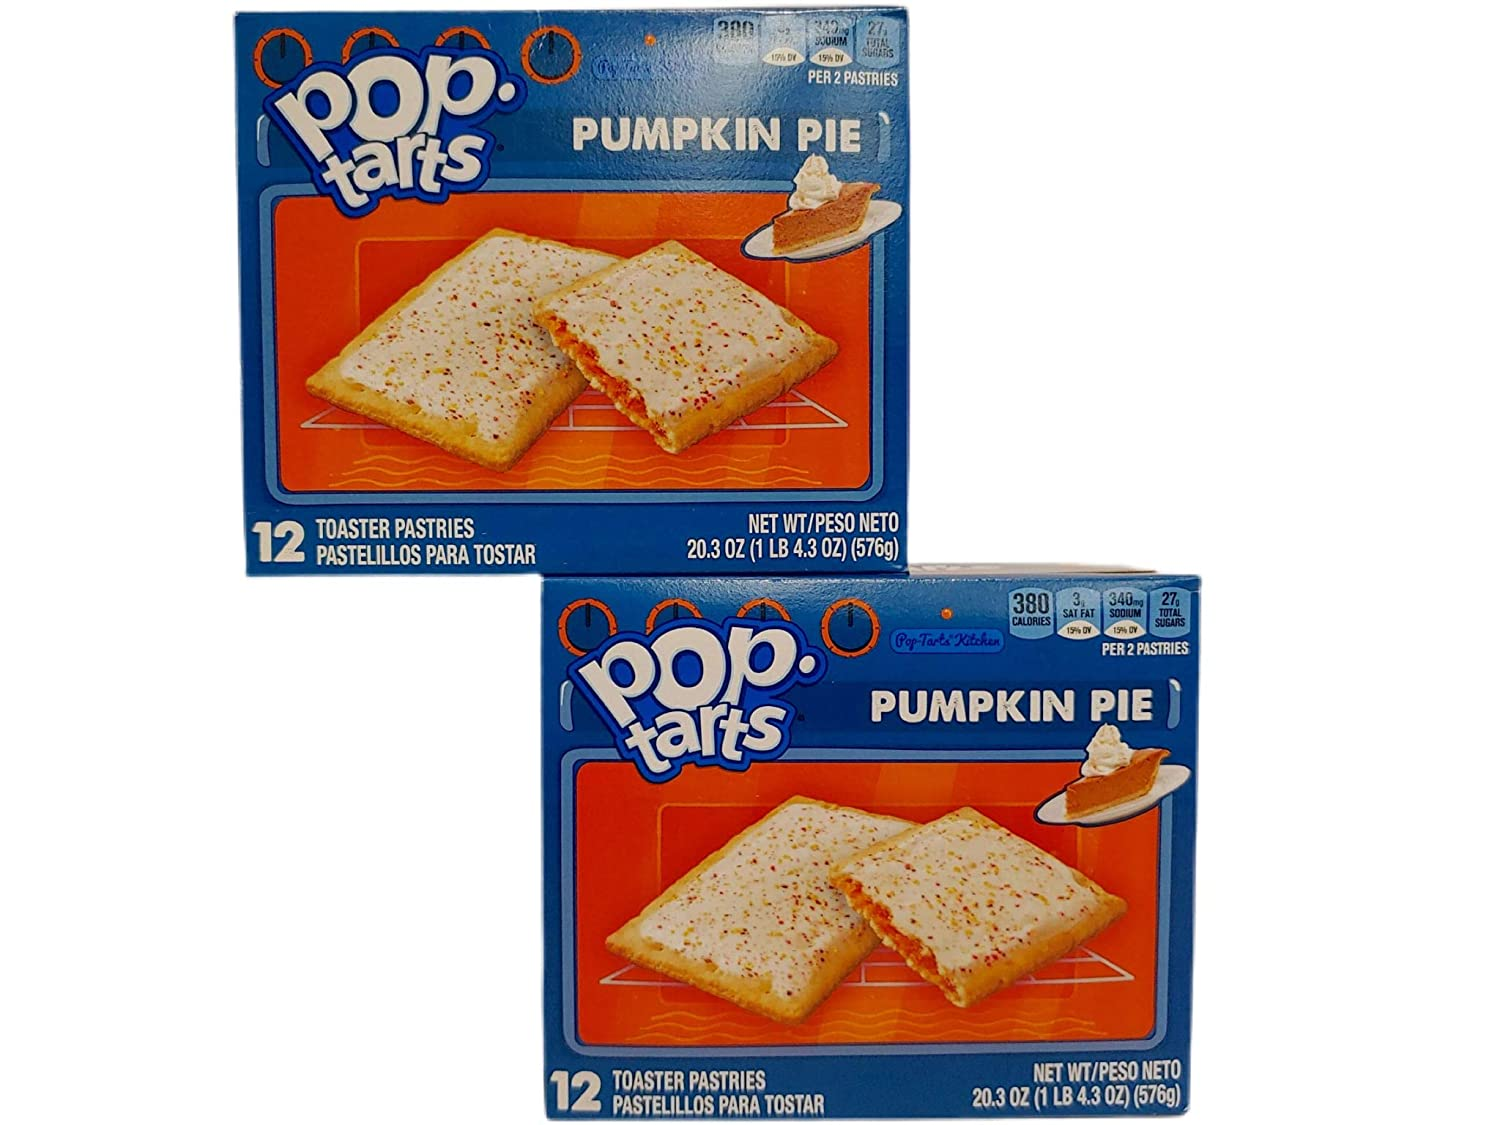 Pop-Tarts Breakfast Toaster Pastries, Frosted Pumpkin Pie Flavored, Limited Edition, 2020 Packaging, 20.30 Oz Box (Pack of 2)